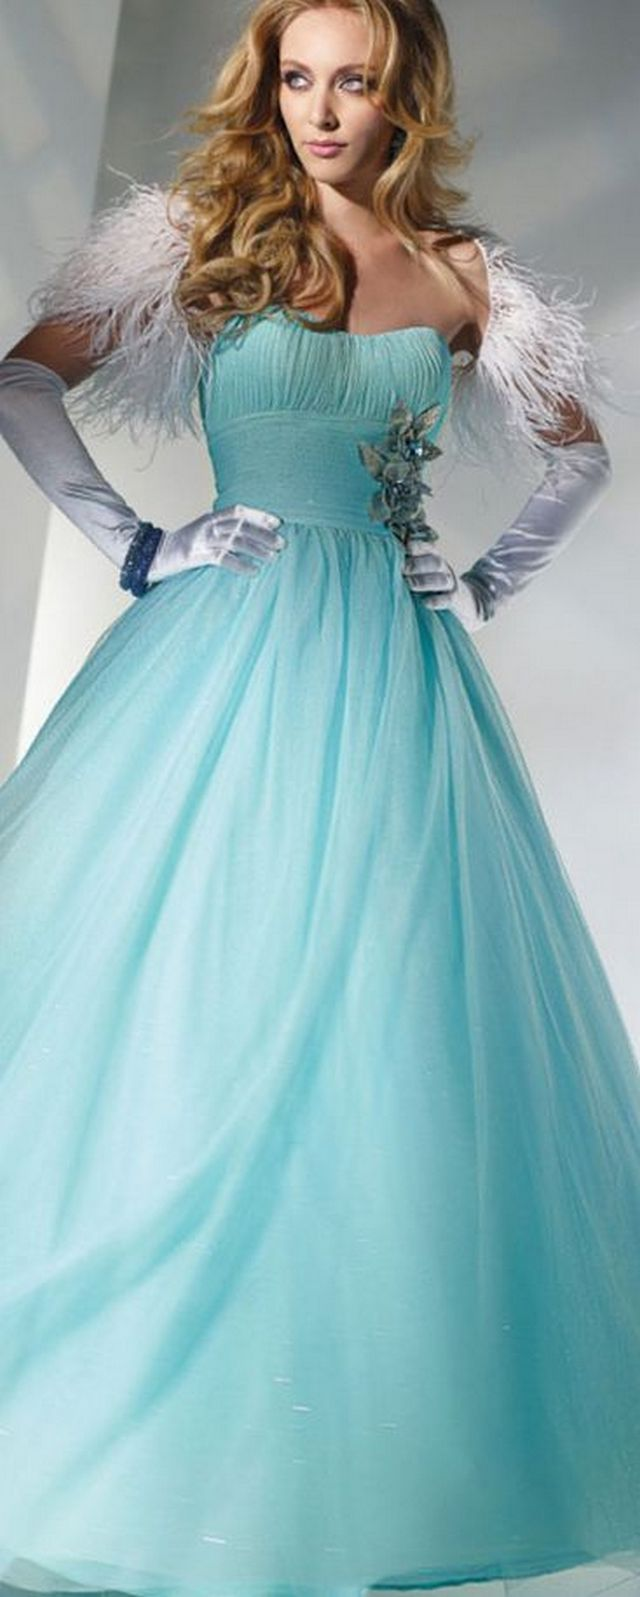 blue wedding dress image